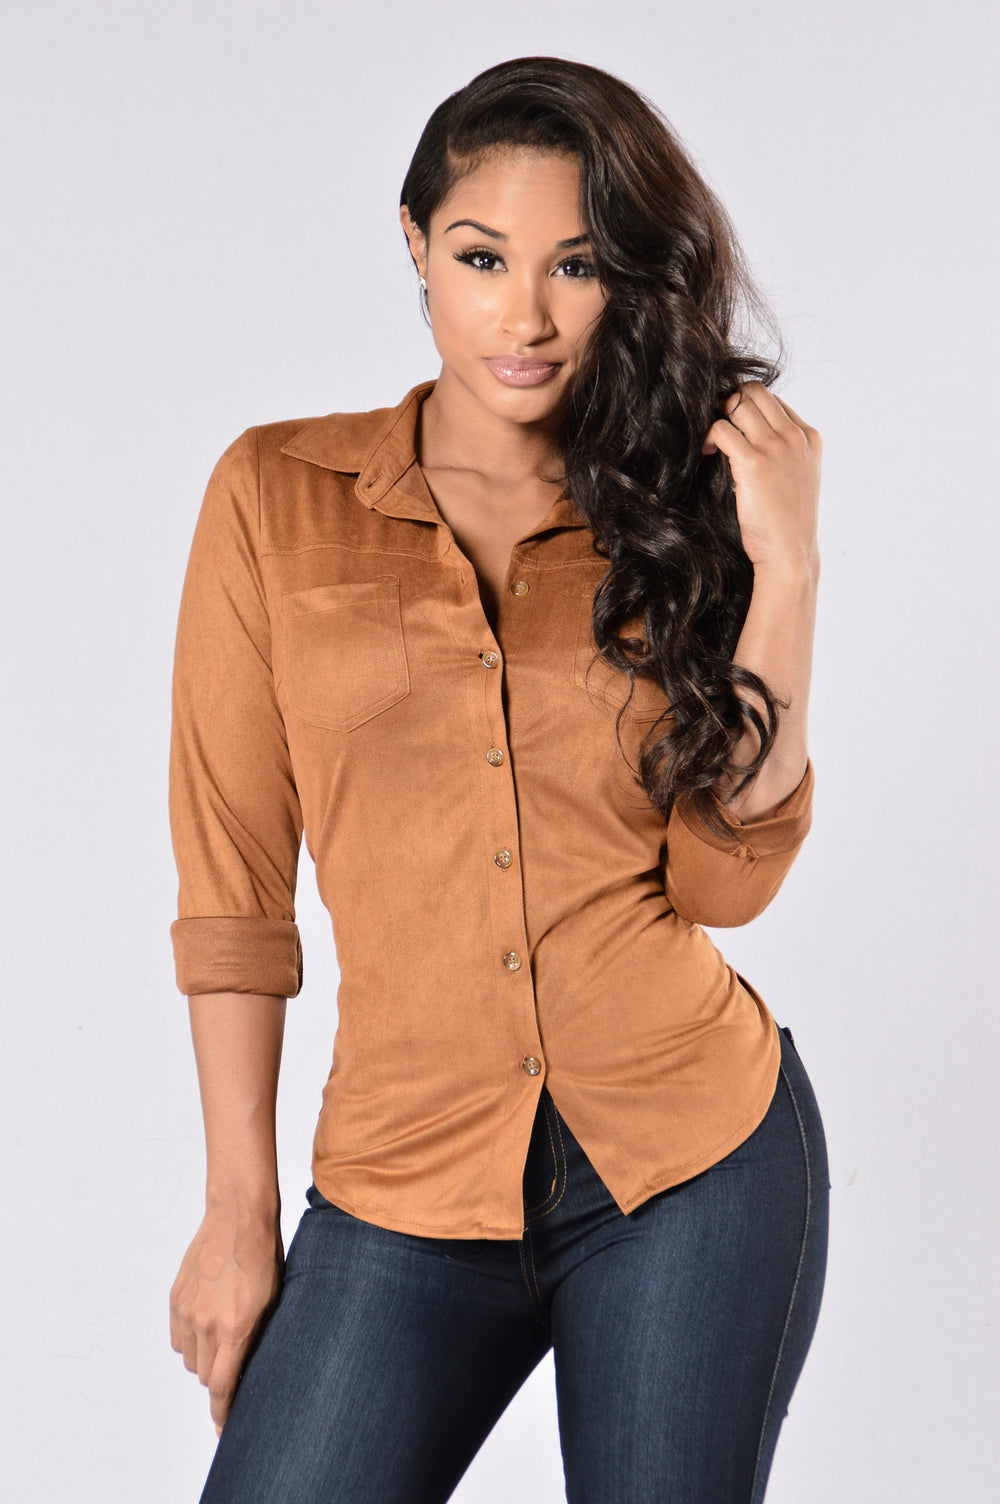 Southern Belle Blouse - Camel